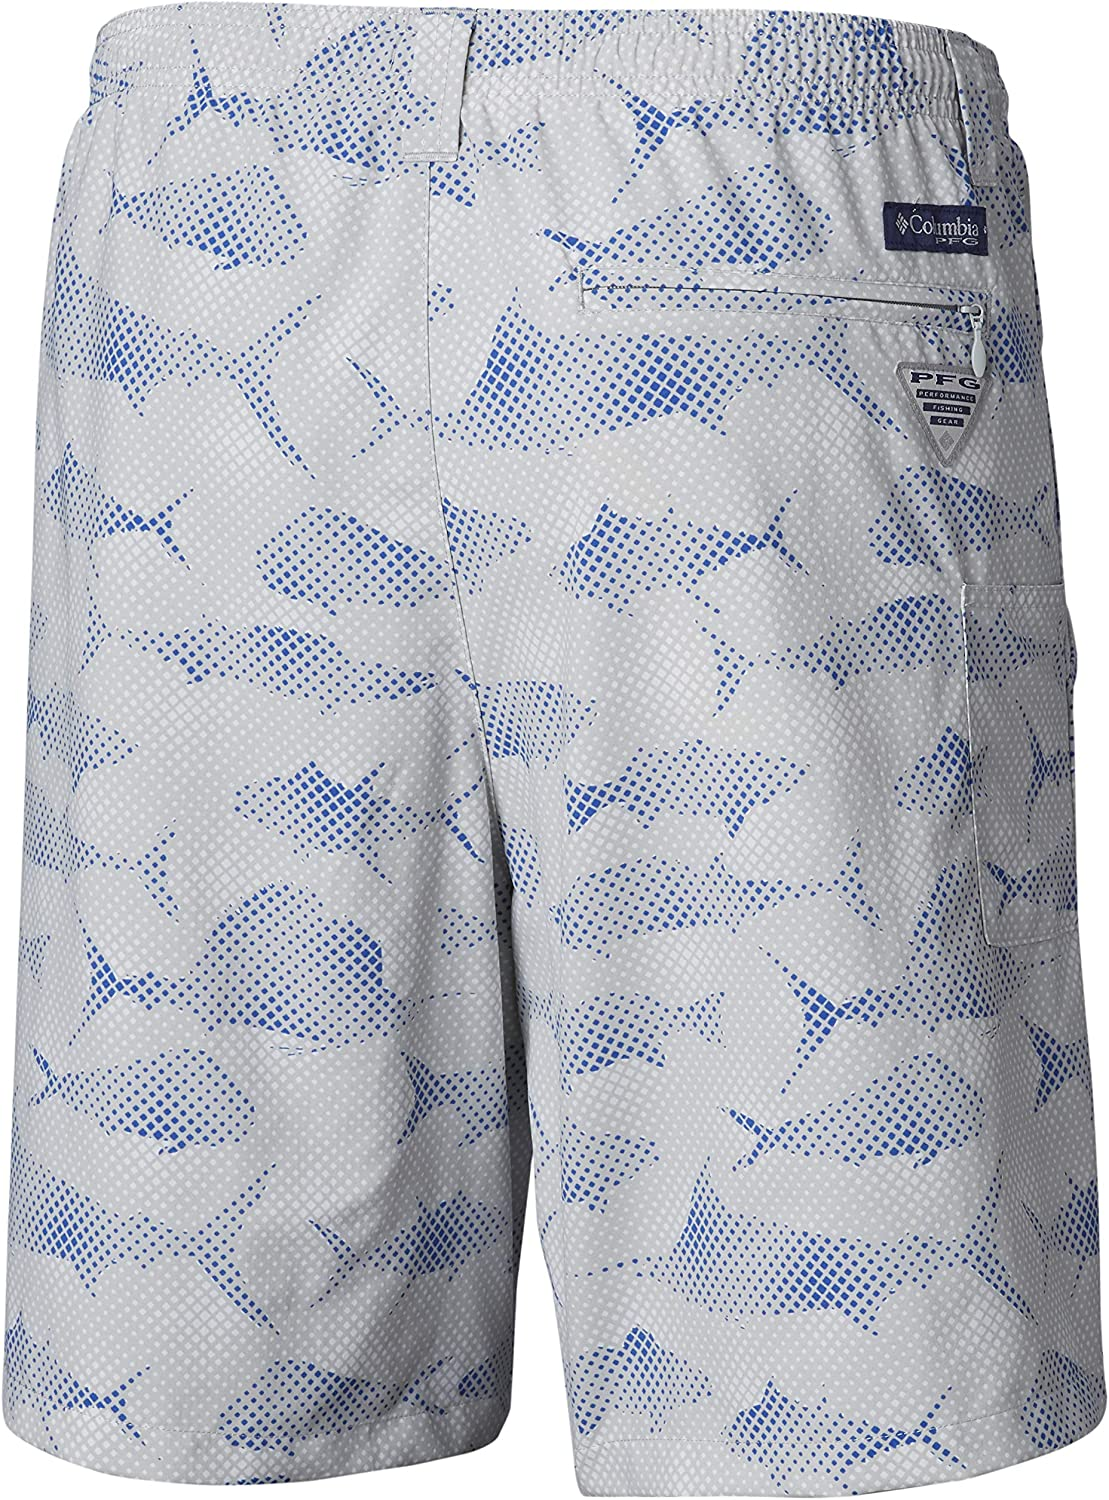 UPF 50 Sun Protection Breathable Columbia Mens PFG Super Backcast Water Short